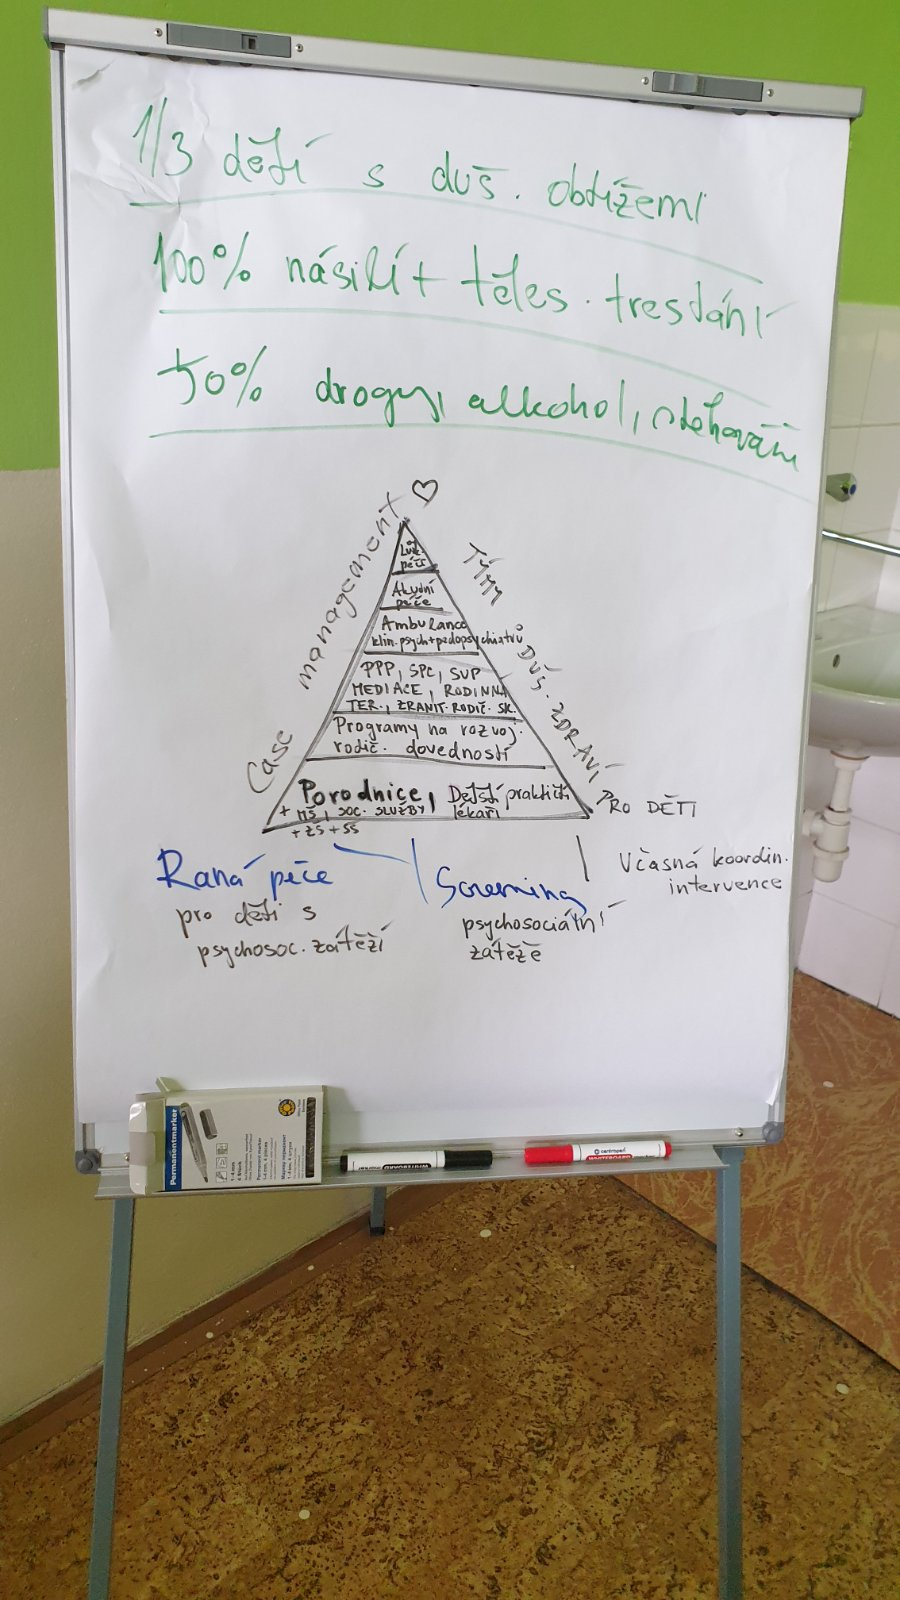 ČOSIV helps Czech schools to introduce a three-tiered behavior support